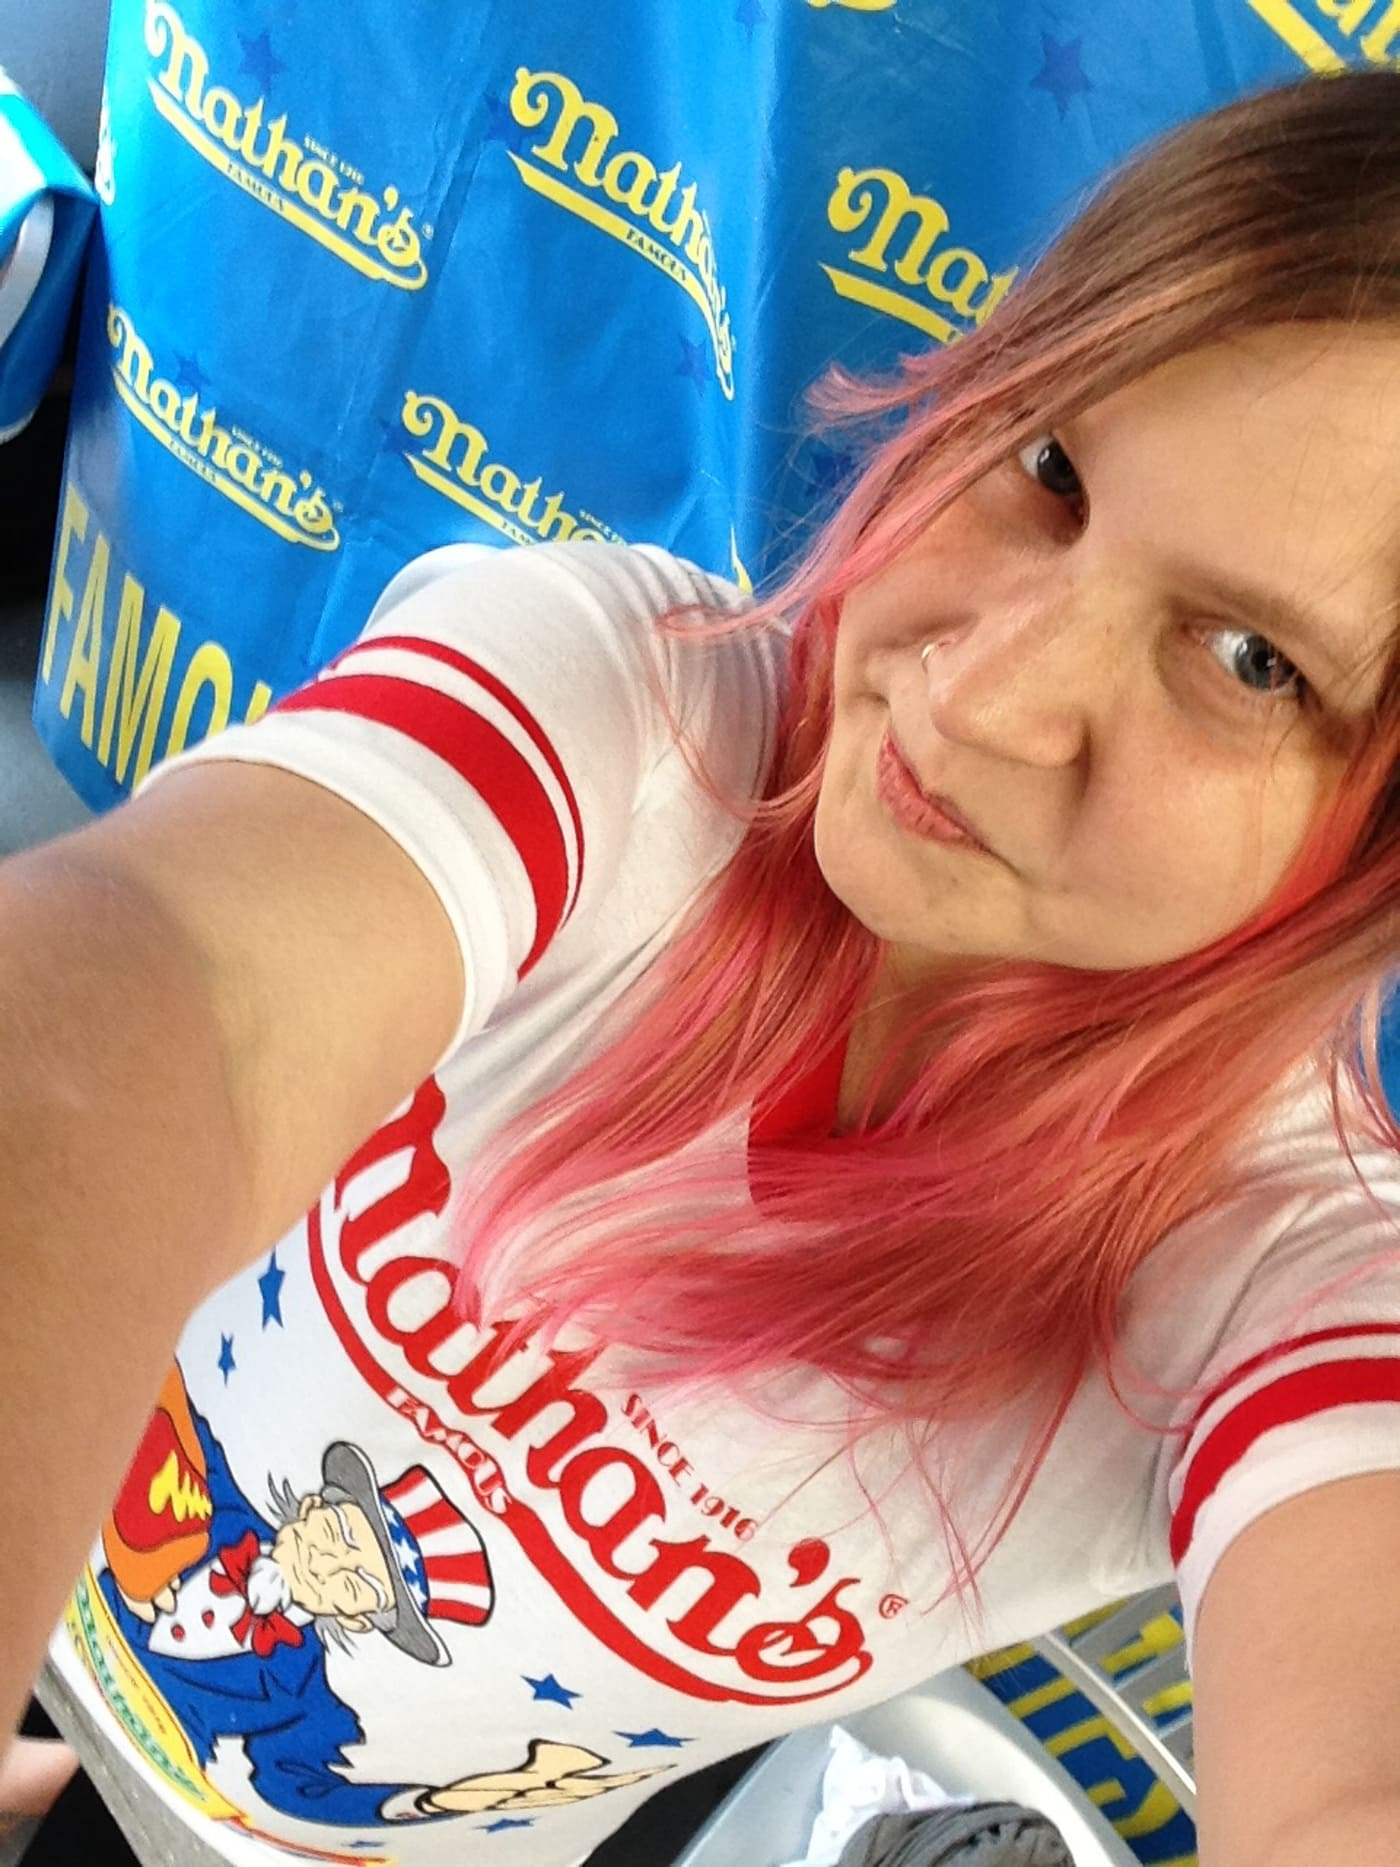 Dressed in my jersey for the Nathan's Famous July Fourth Hot Dog Eating Contest at Coney Island.